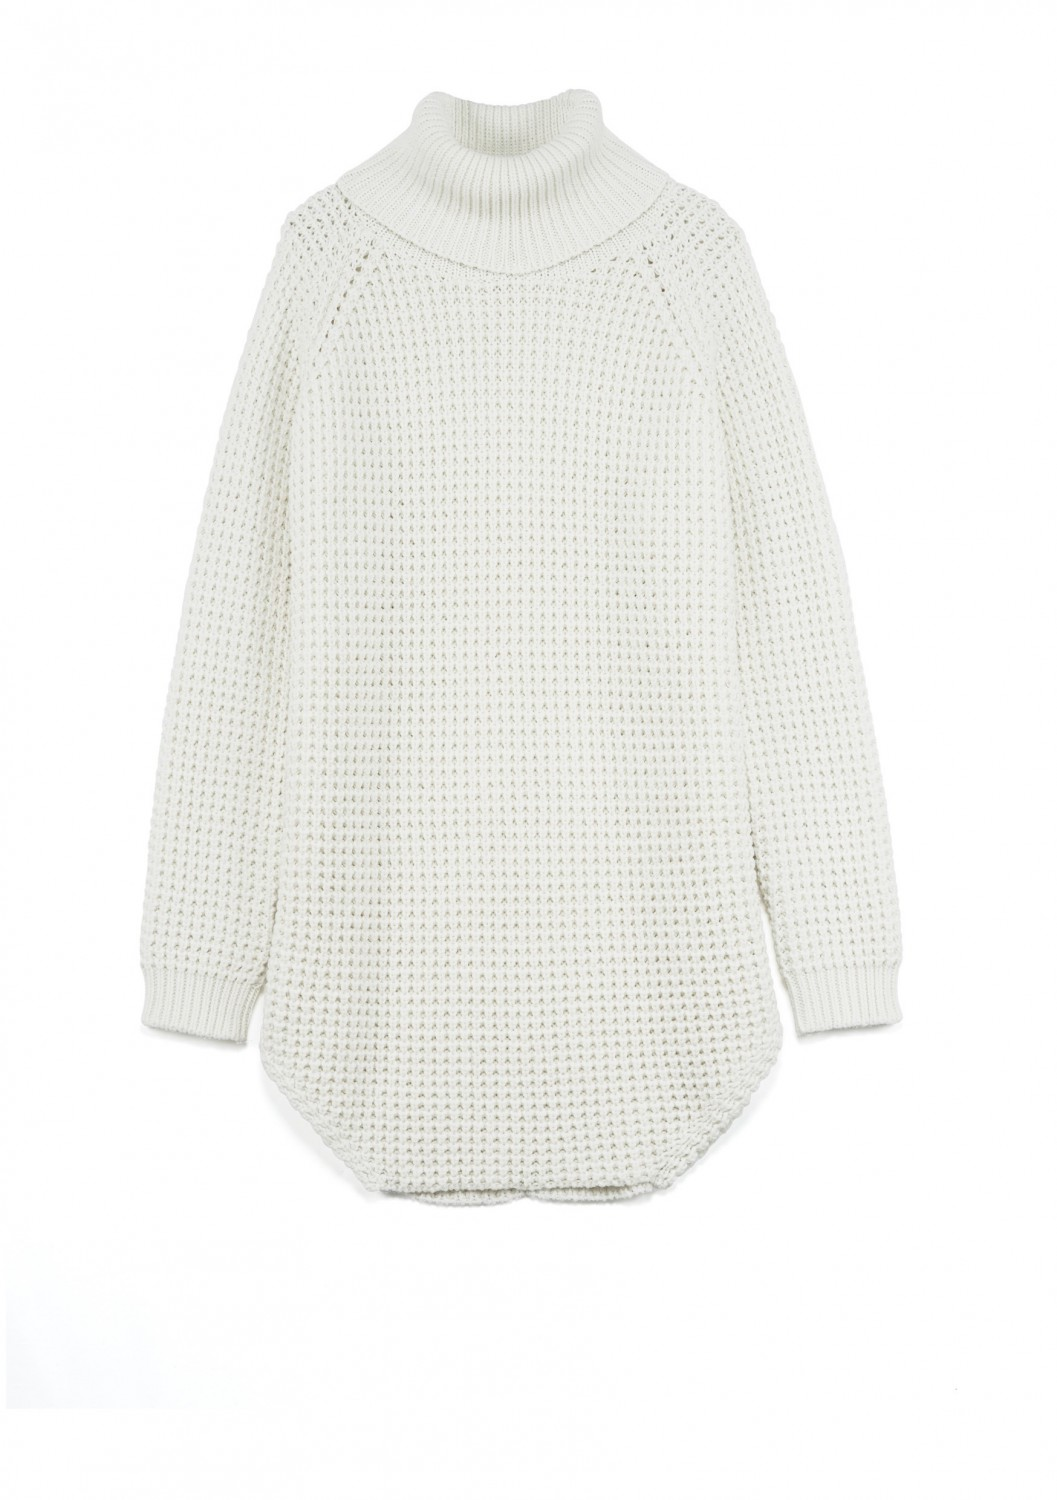 figtny.com | Hope Sweater via Damoy Antwerp